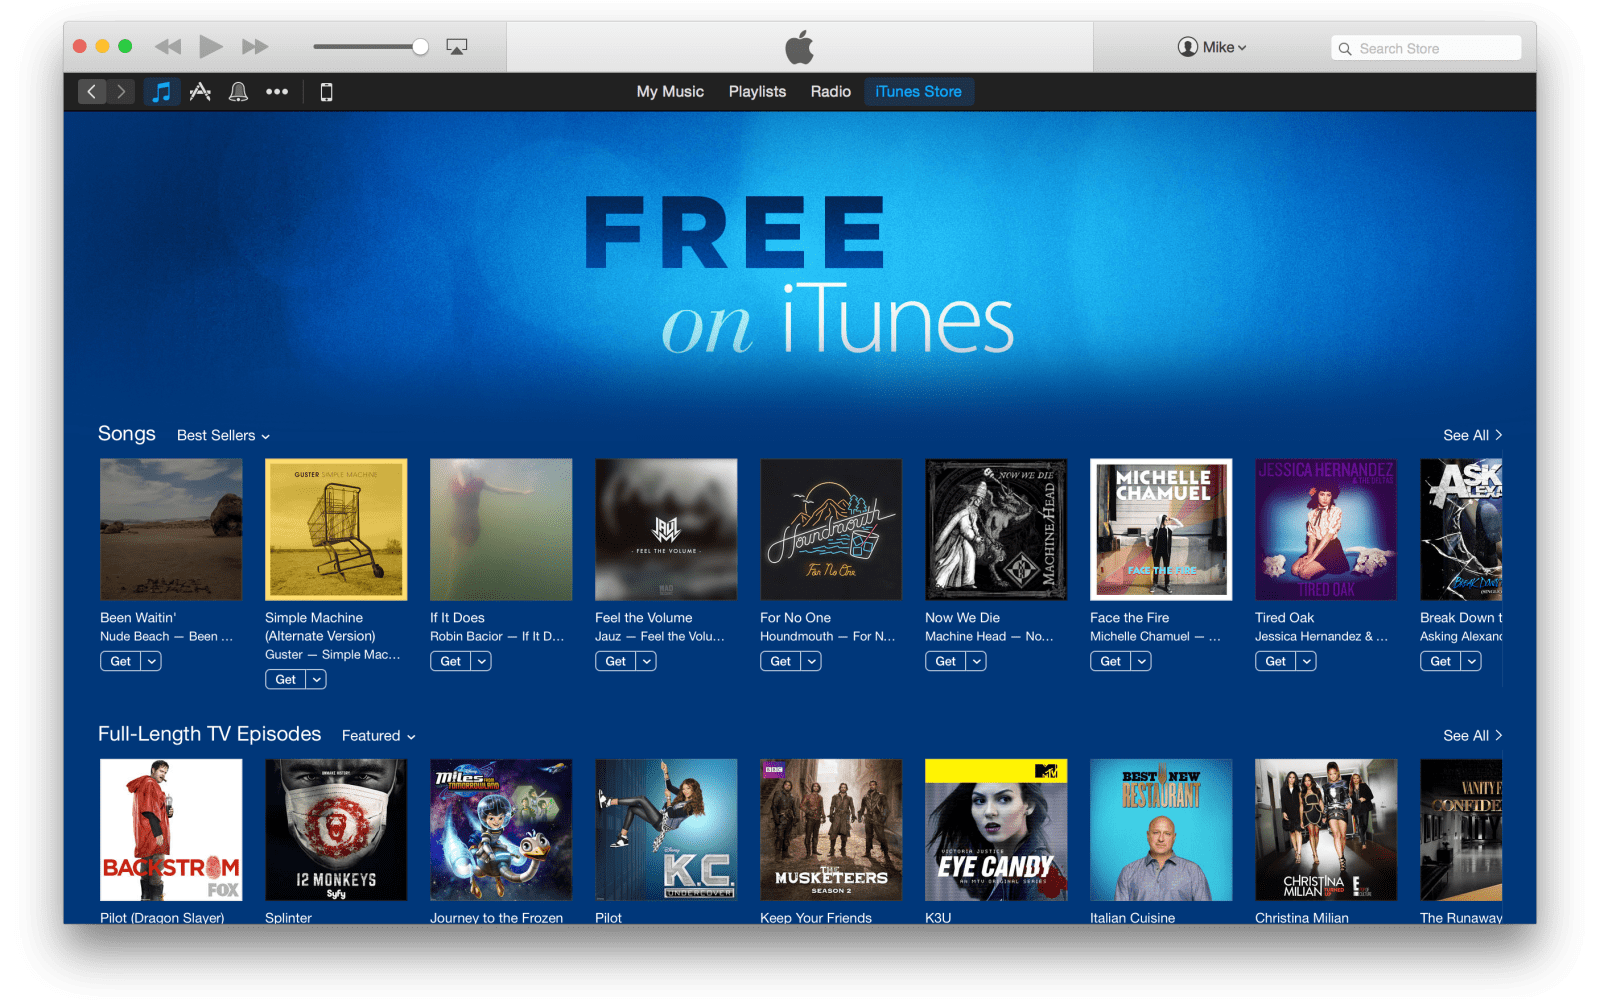 Apple adds new 'Free on iTunes' section featuring singles